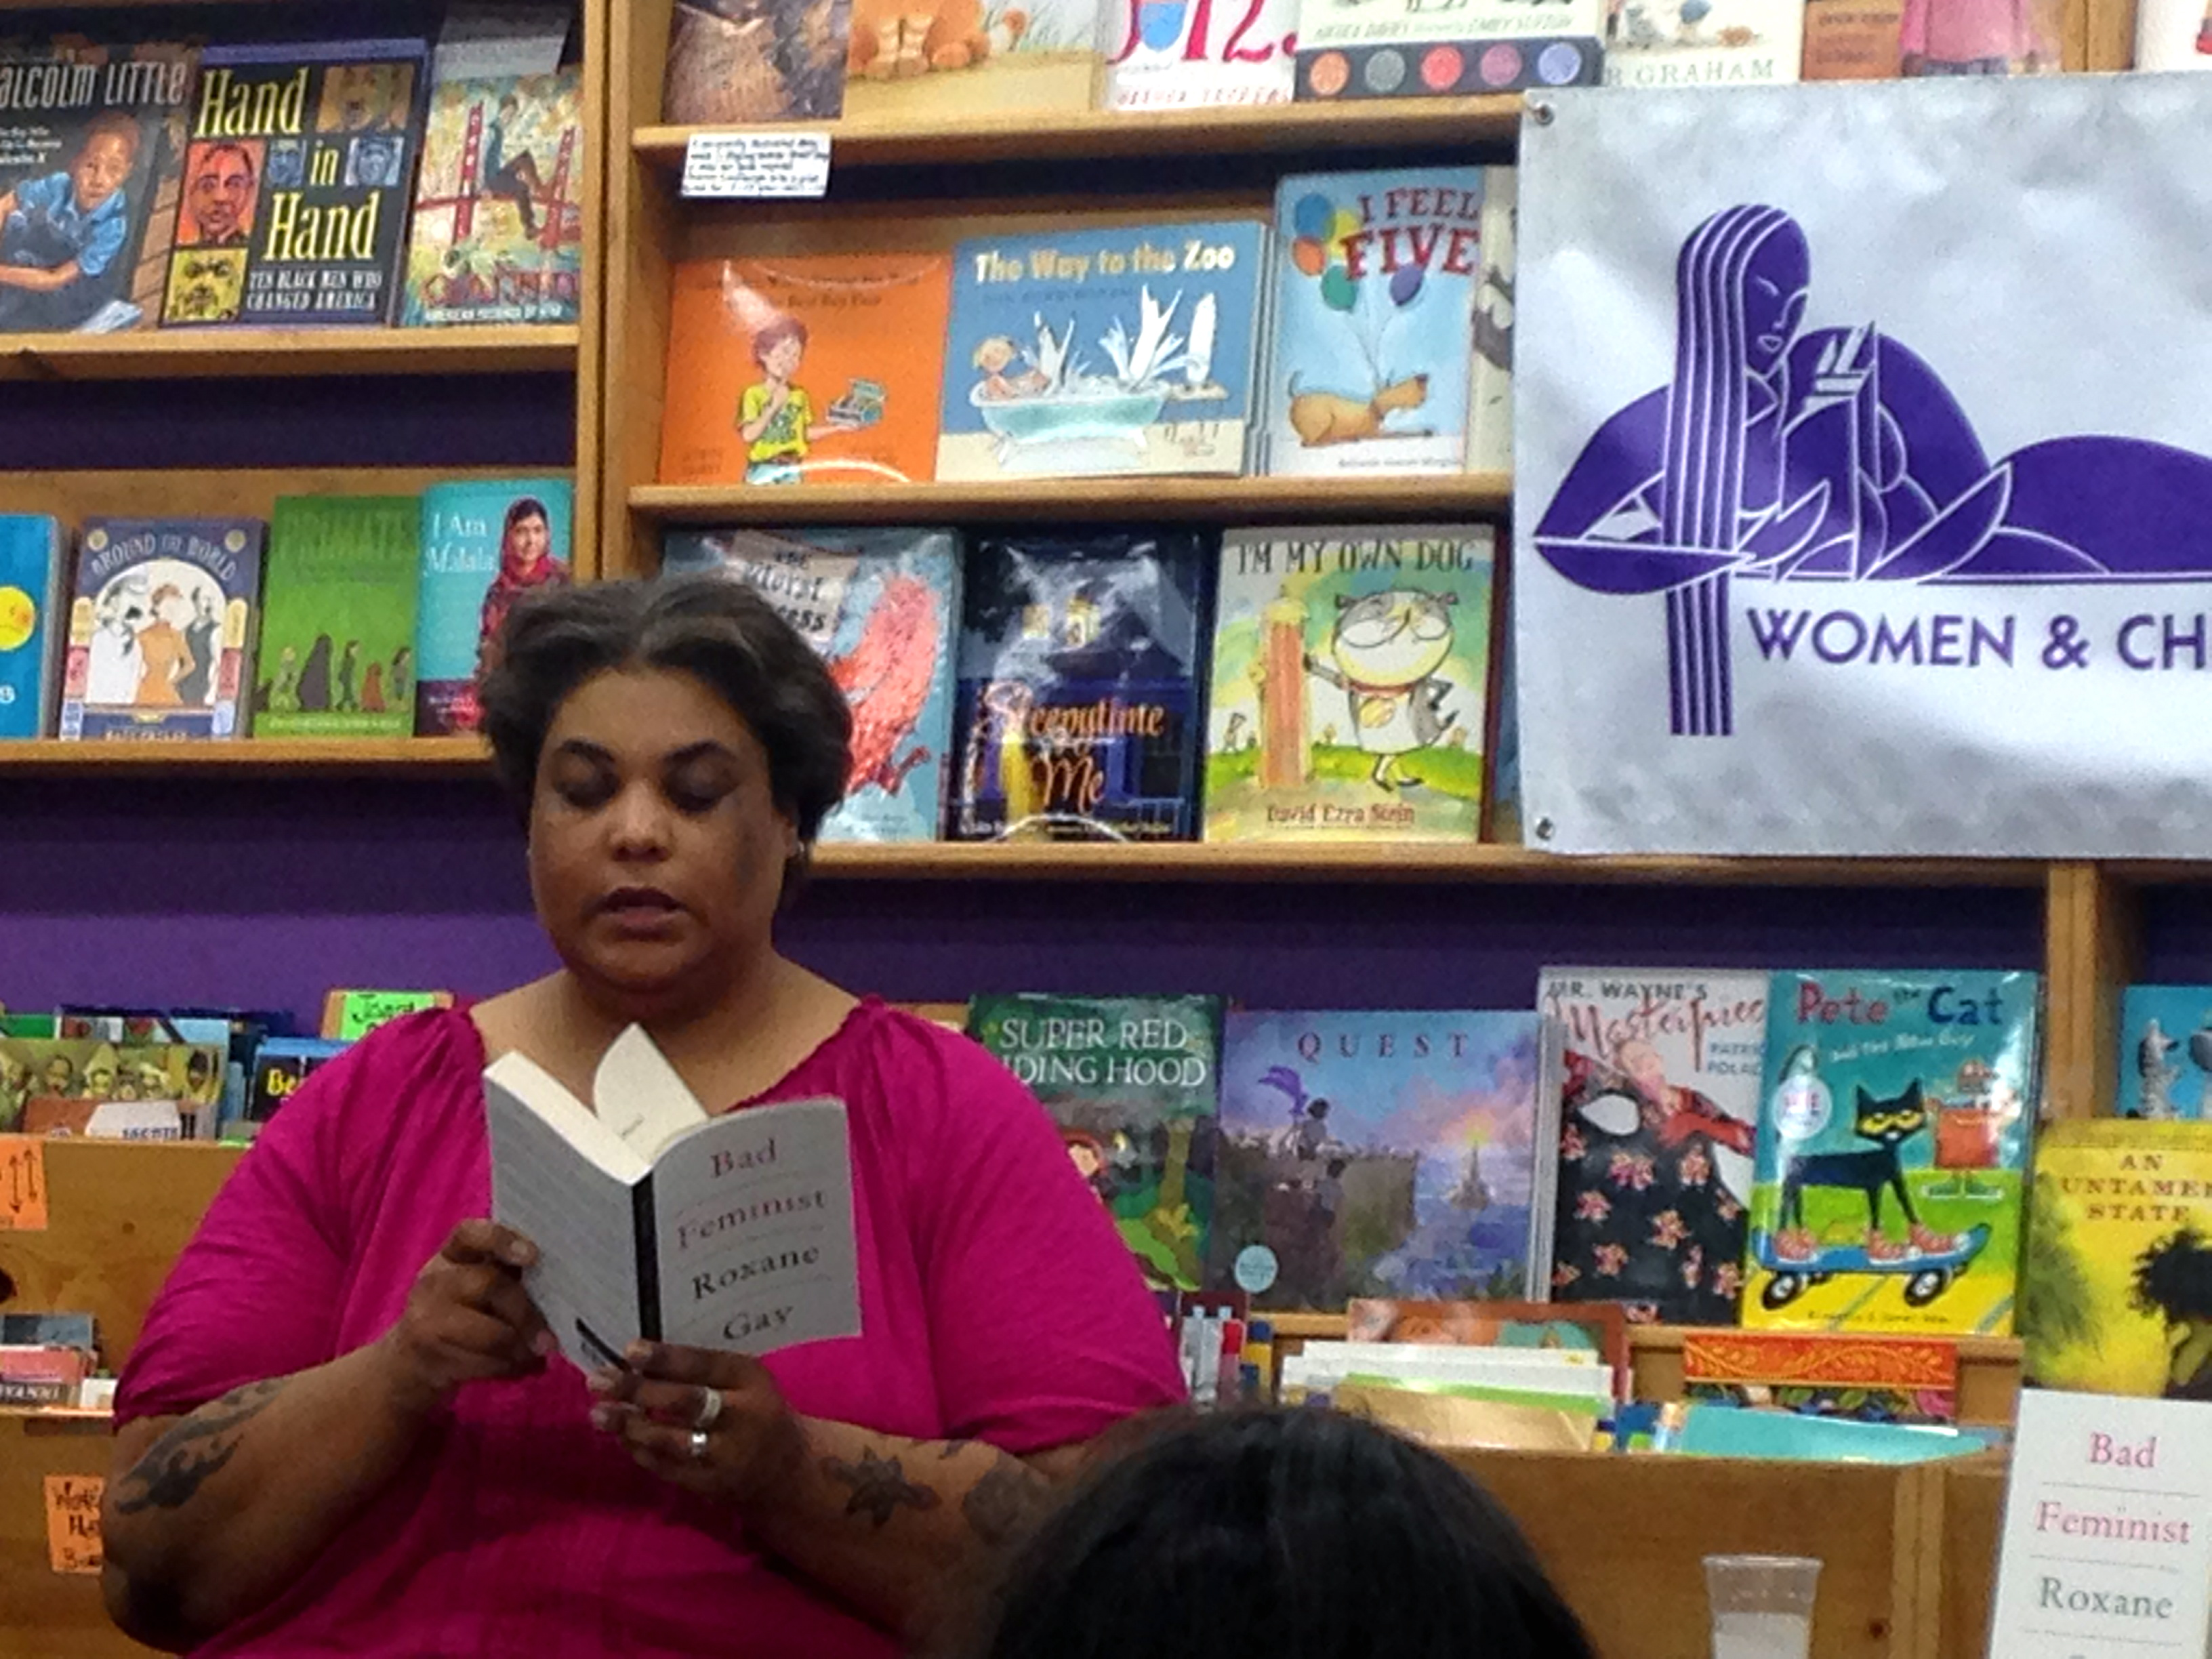 roxane gay on bad feminism beyonc eacute blogging the addison roxane gay